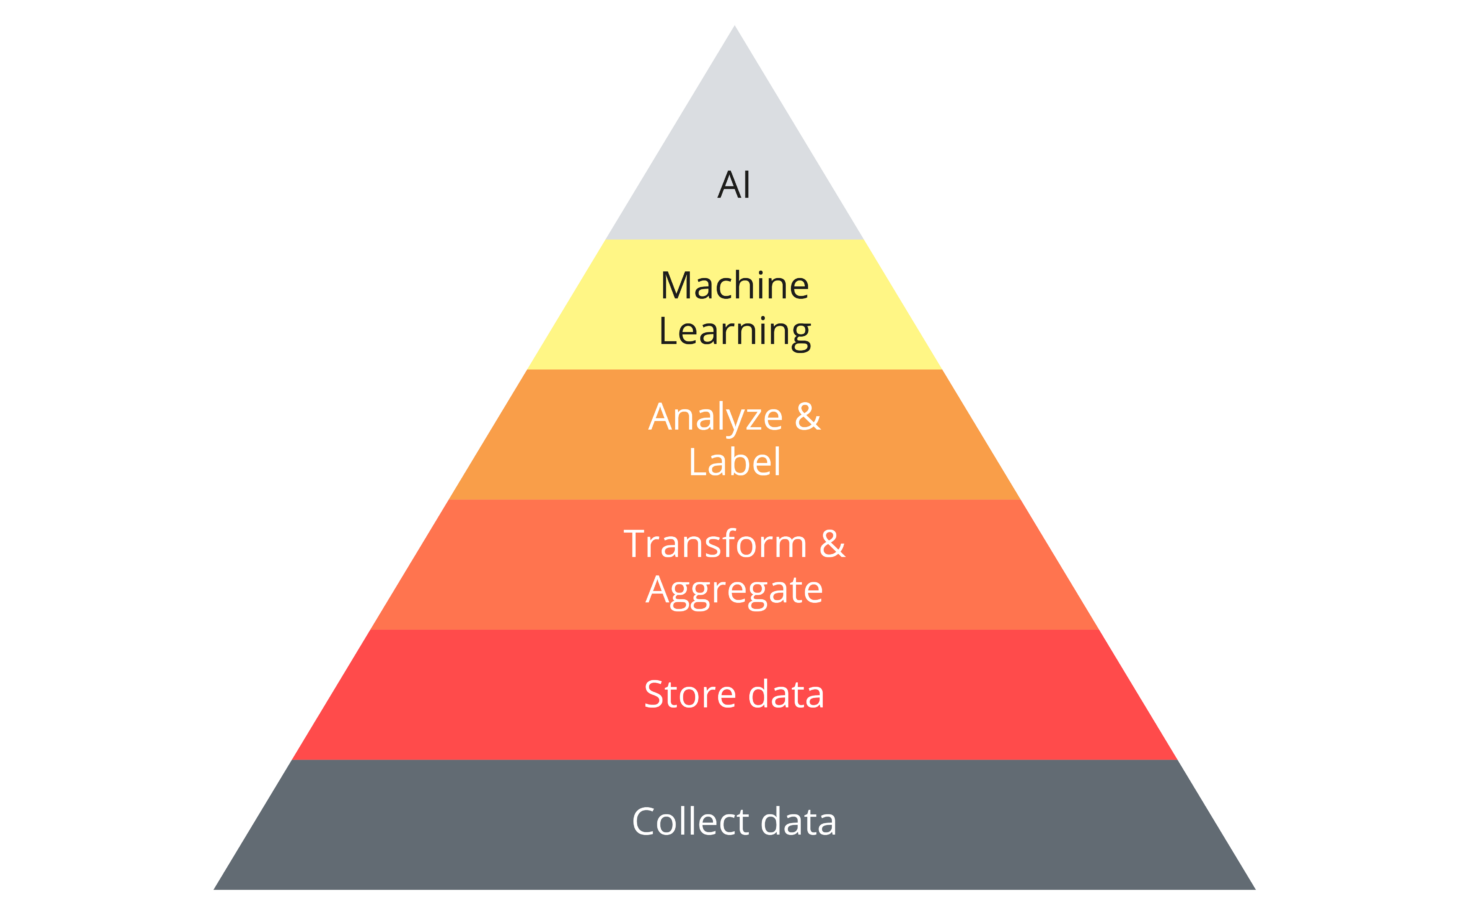 This diagram shows the Data Science hierarchy of needs in the form of a pyramid.